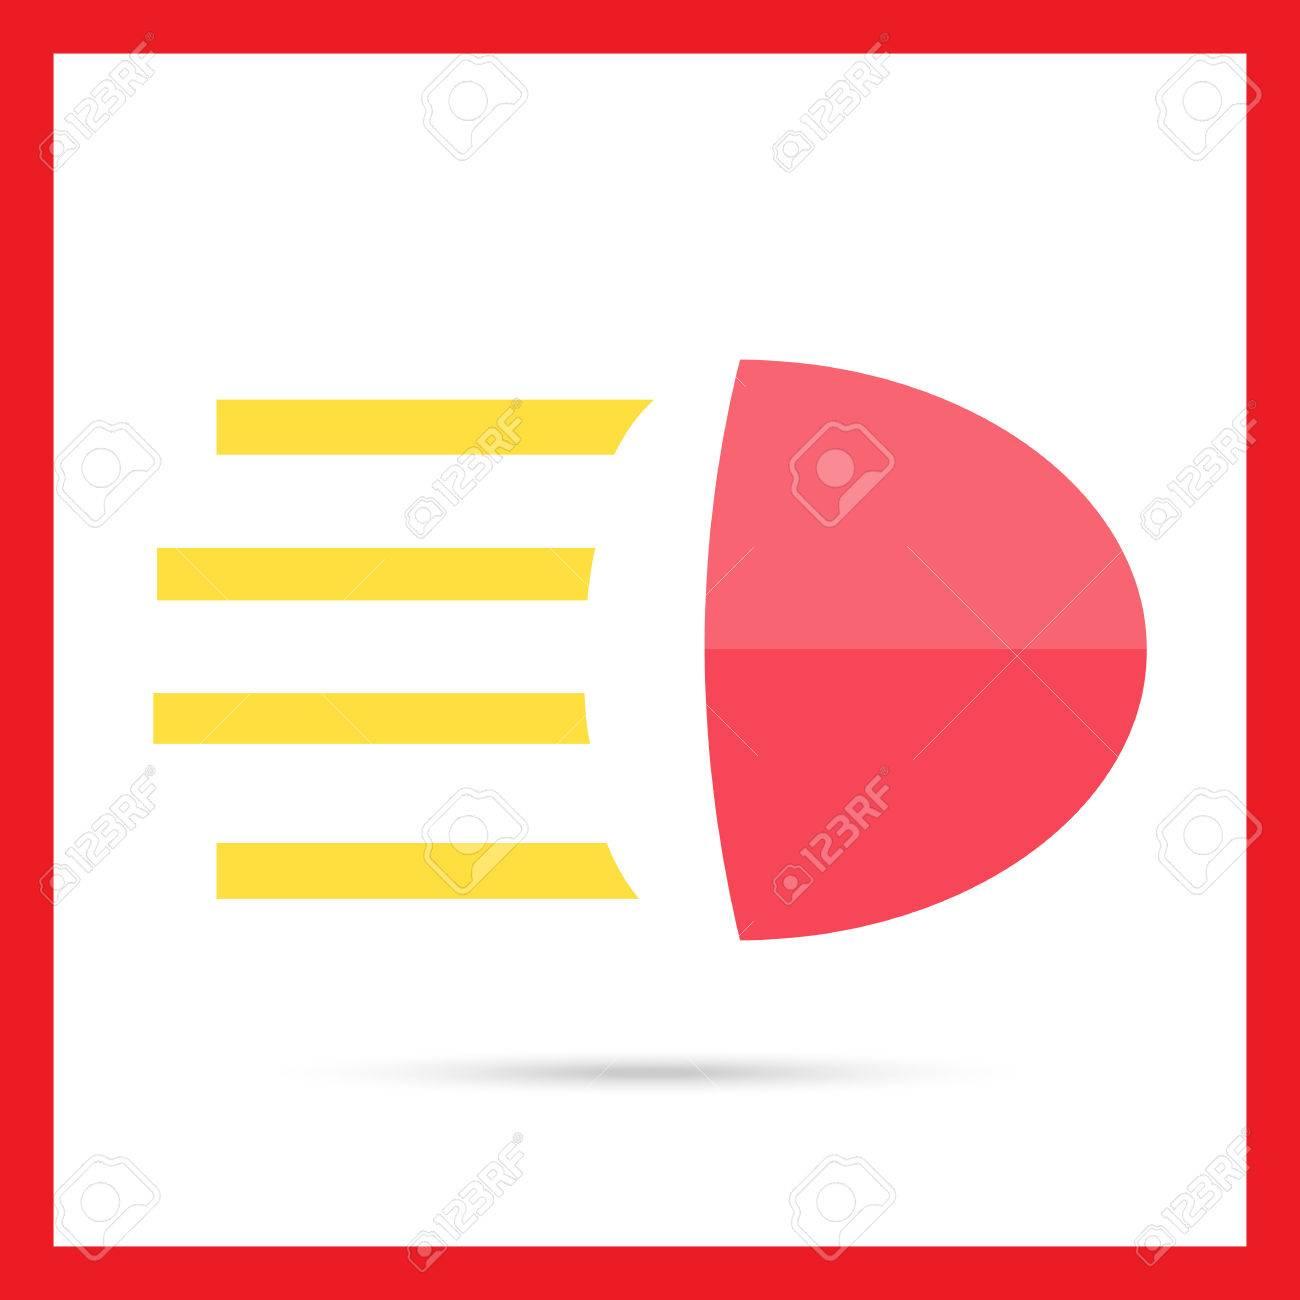 Icon Of High Beam Sign Royalty Free Cliparts Vectors And Stock